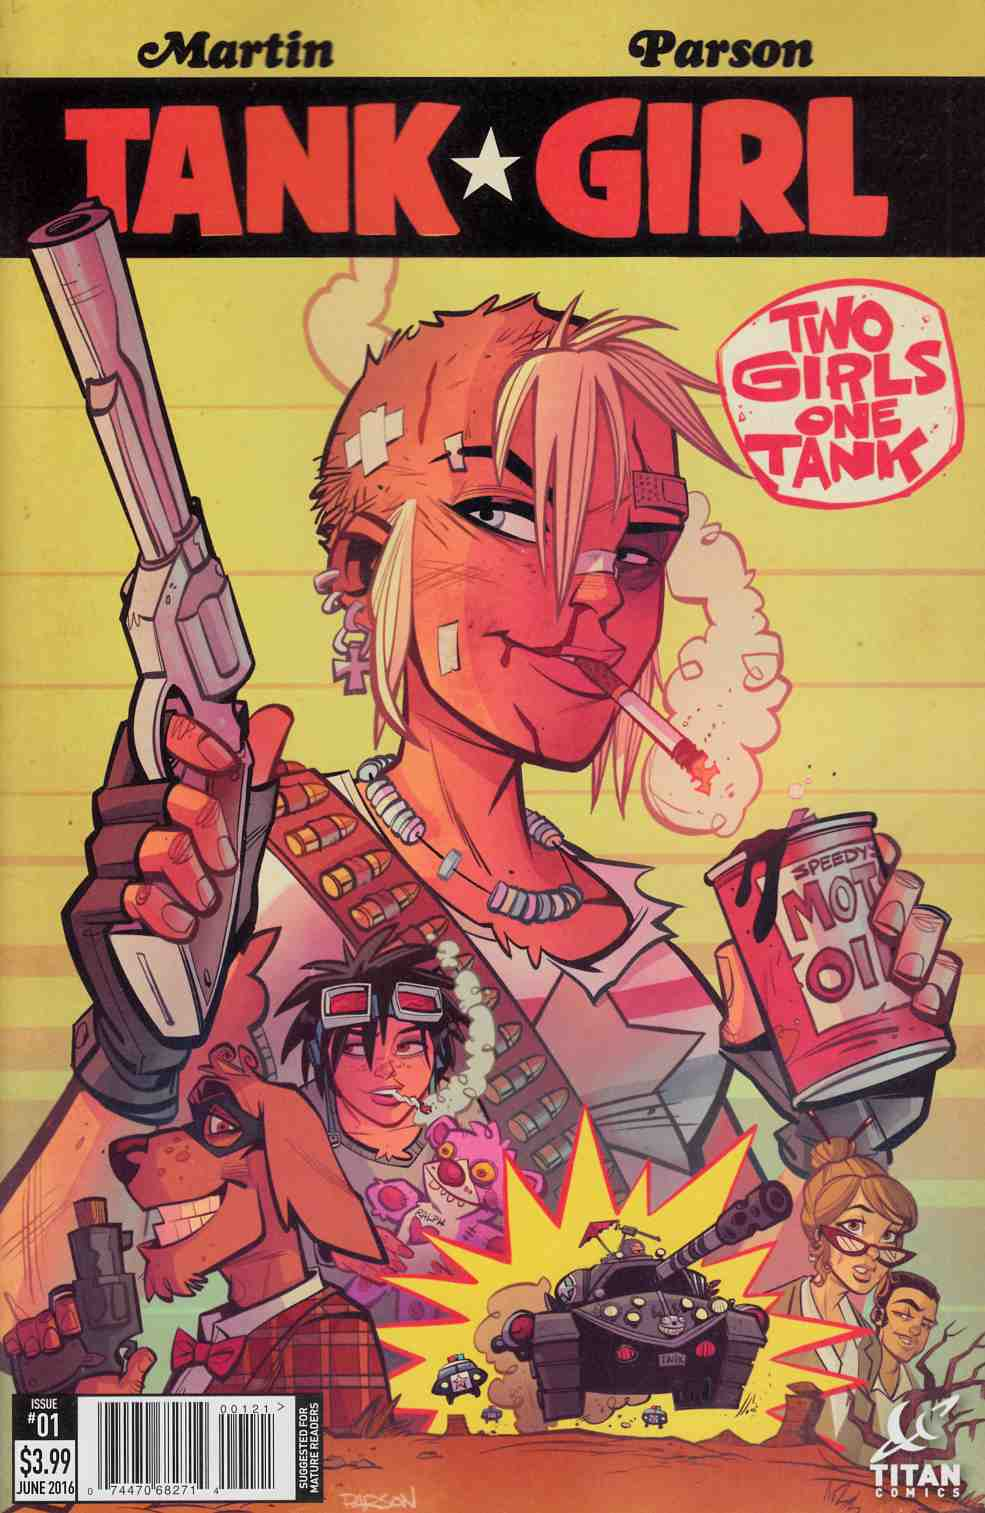 Tank Girl 2 Girls 1 Tank #1 Cover B [Titan Comic]